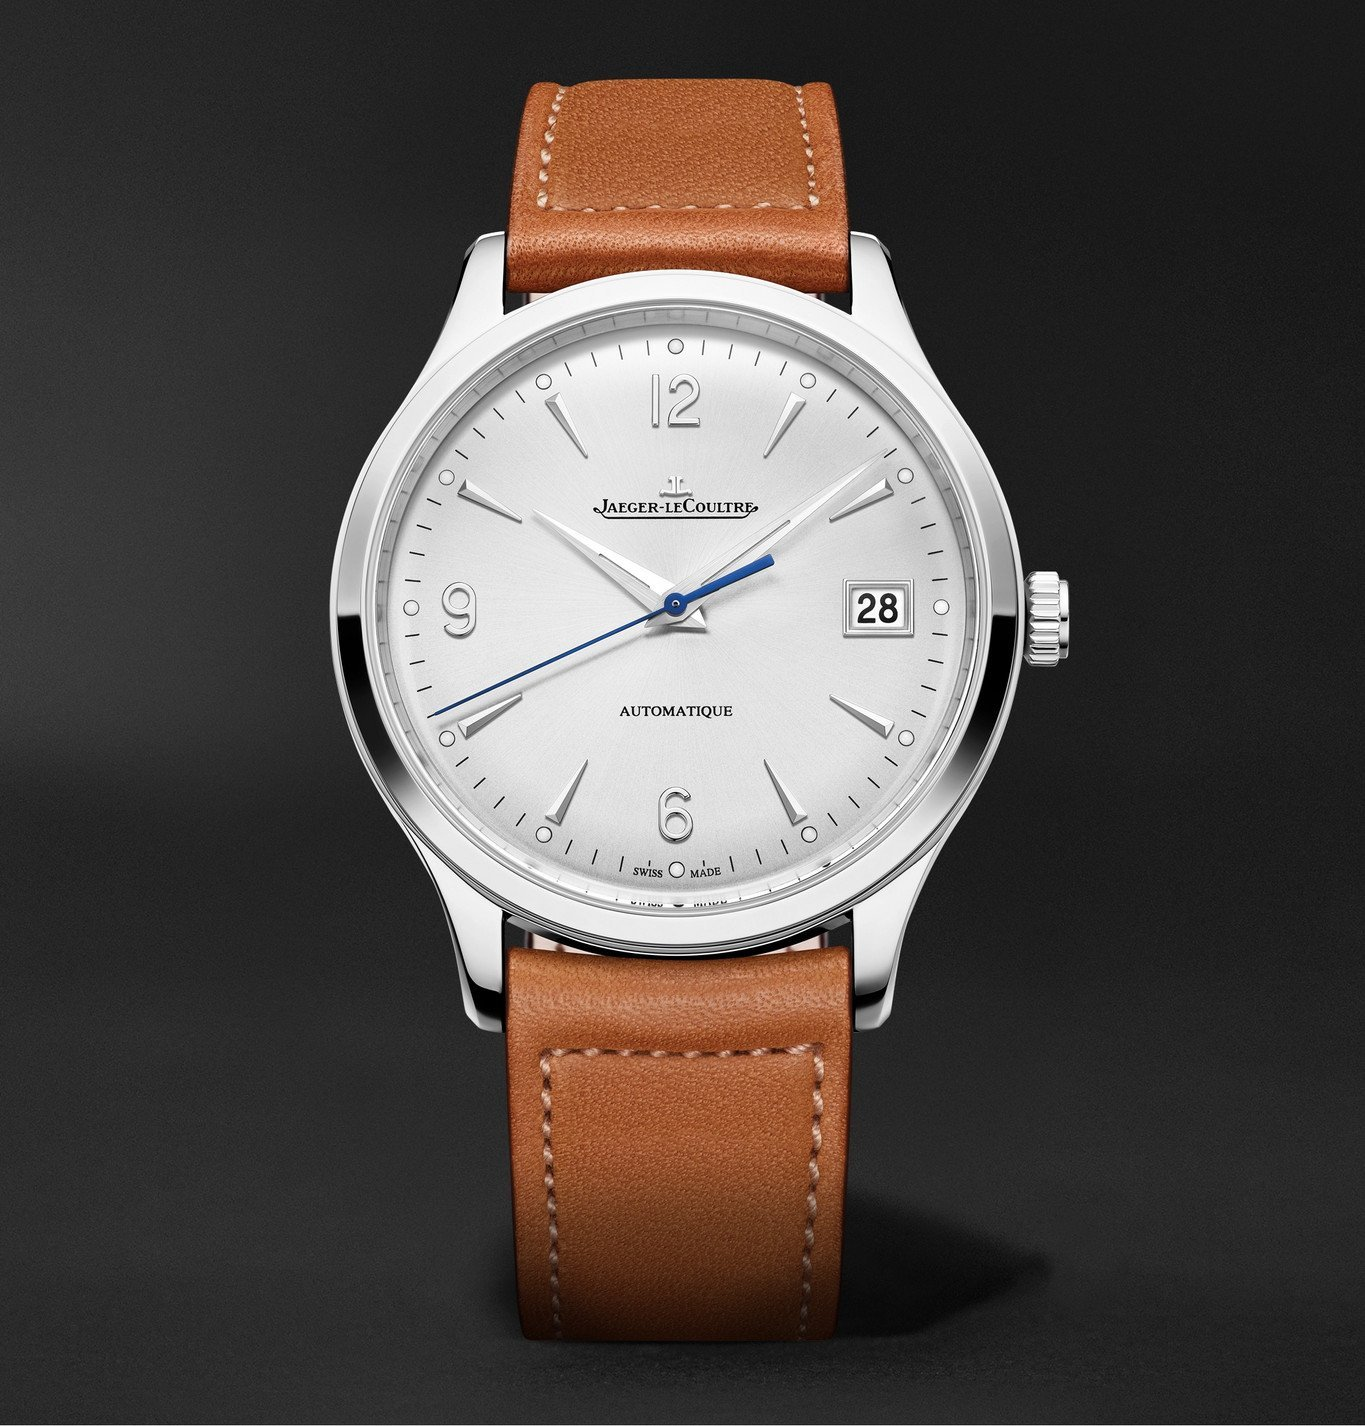 Photo: Jaeger-LeCoultre - Master Control Date Automatic 40mm Stainless Steel and Leather Watch, Ref No. 4018420 - White